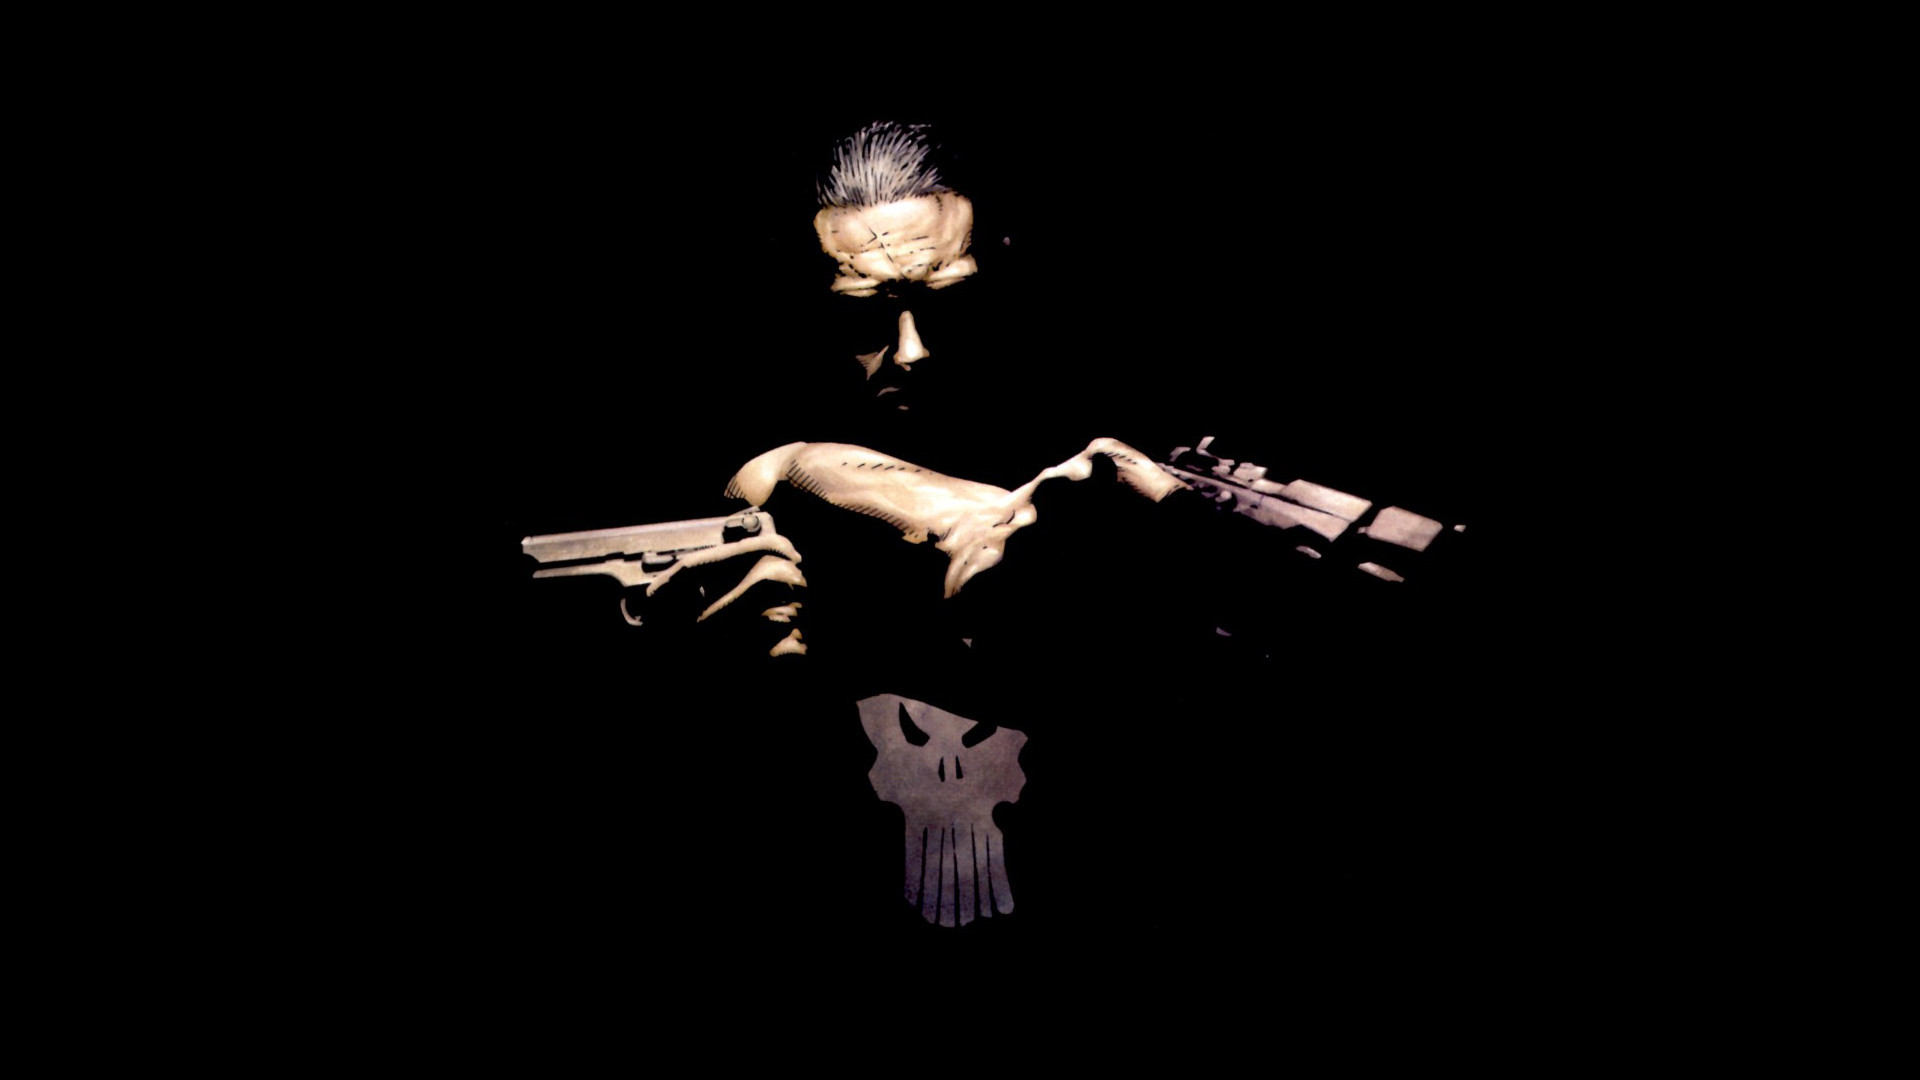 Punisher Hd Wallpaper 73 Images